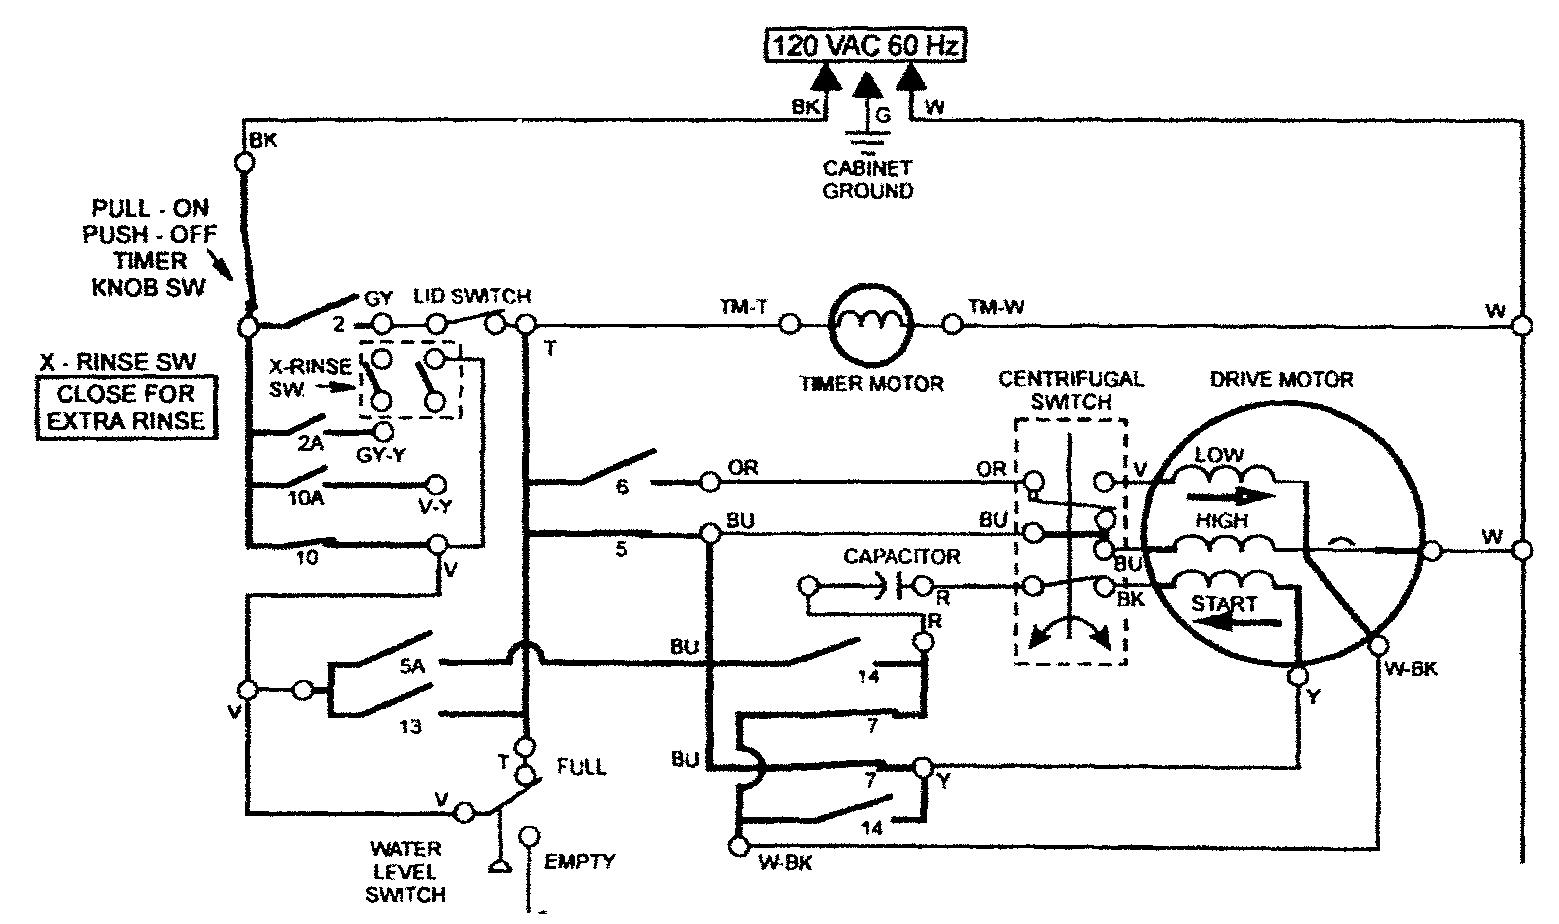 five three speed switch wire diagram